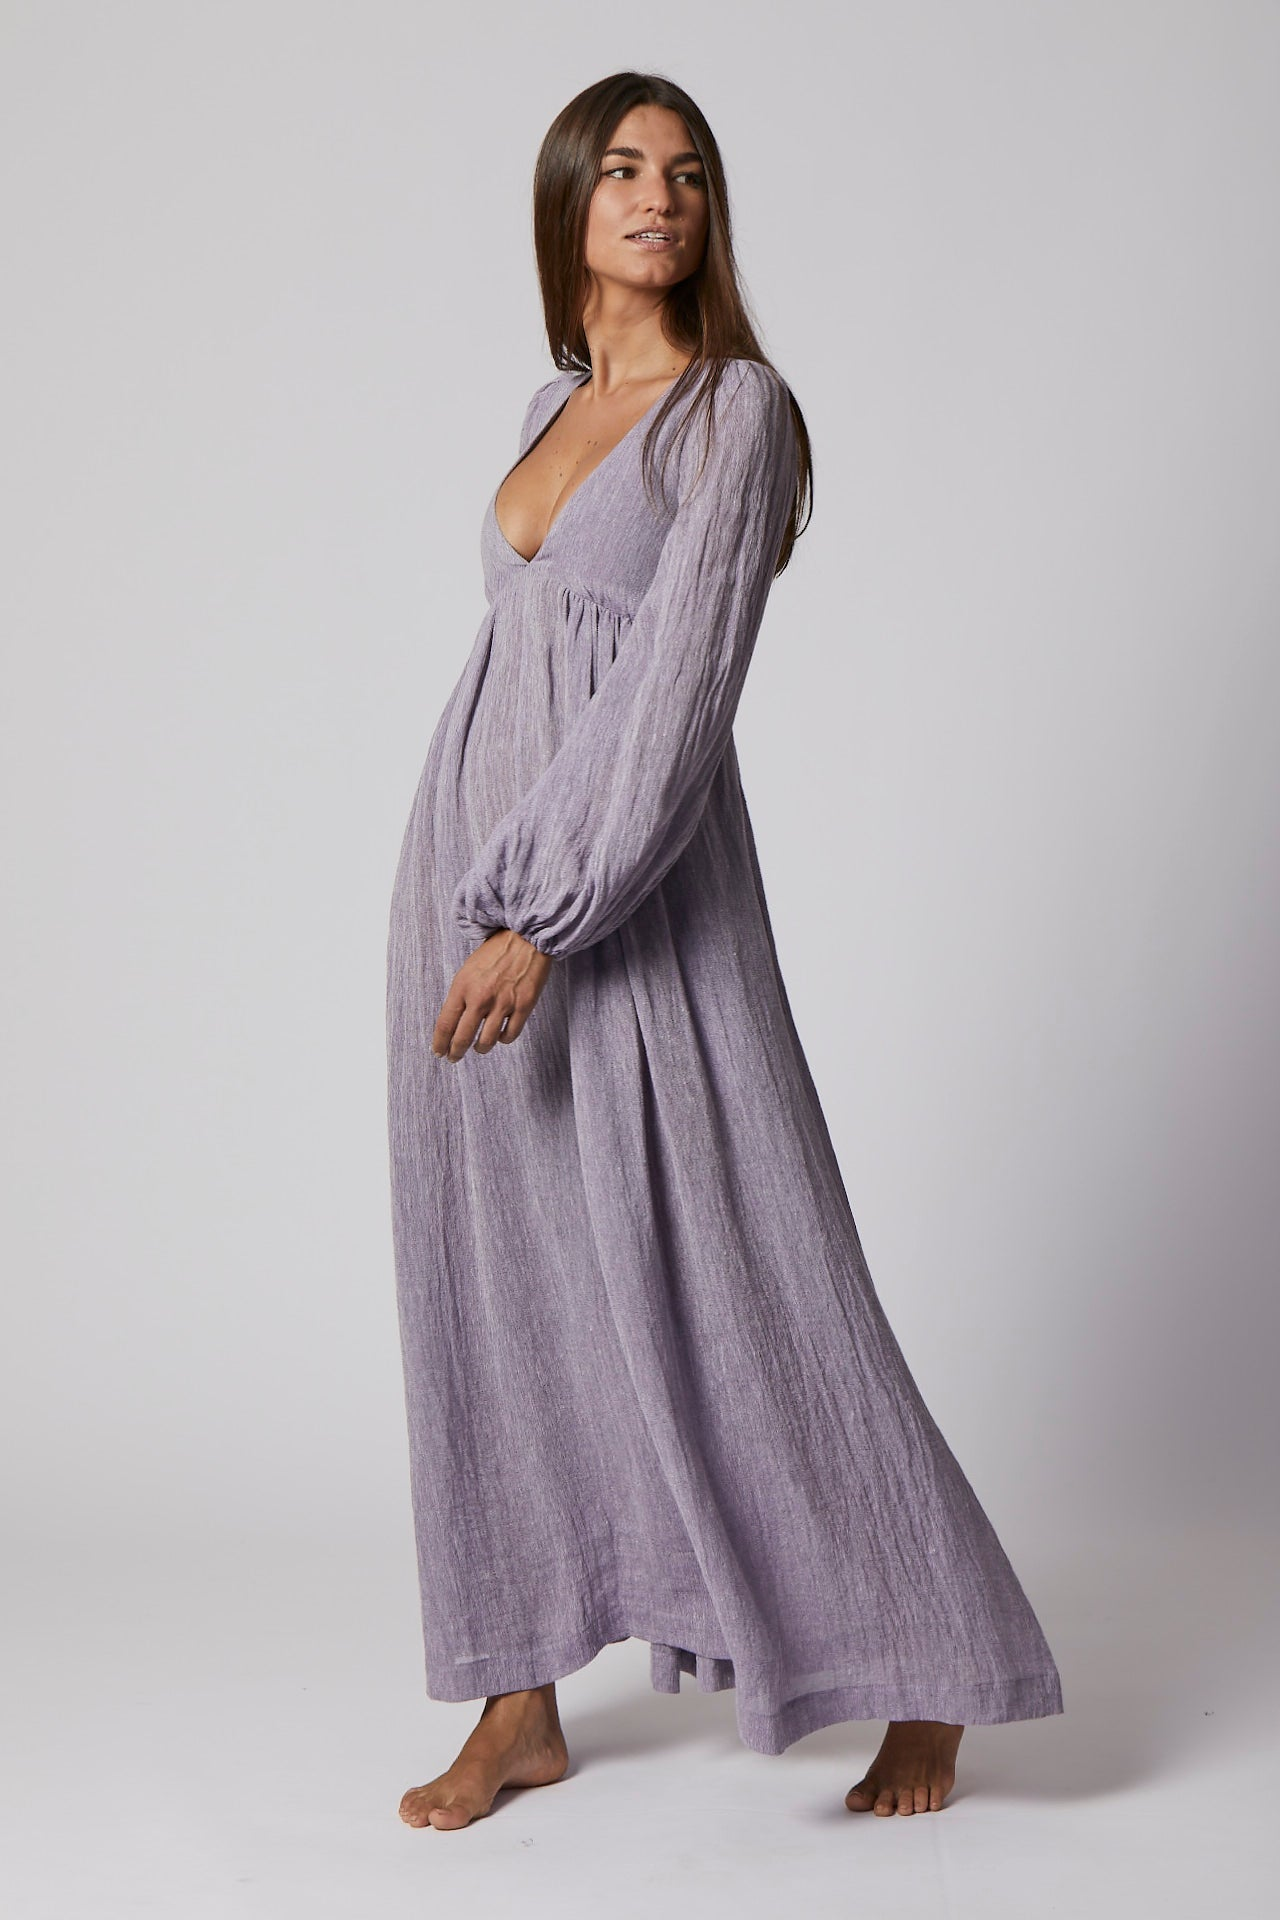 CAROLYN LAVENDER ORGANIC GAUZE DRESS